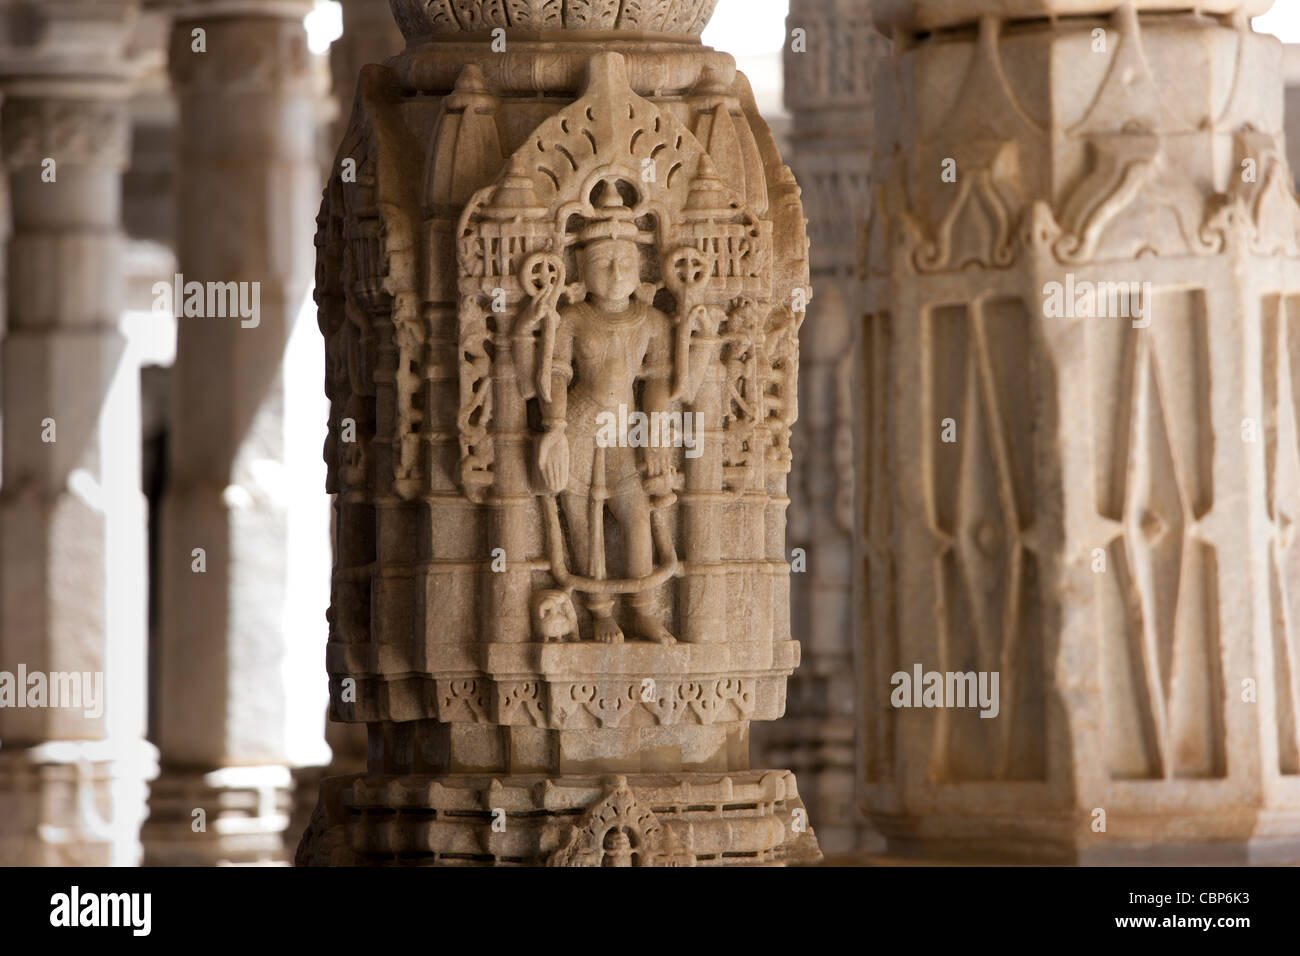 Stone carvings and marble pillars at The Ranakpur Jain Temple at Desuri Tehsil in Pali District of Rajasthan, Western - Stock Image